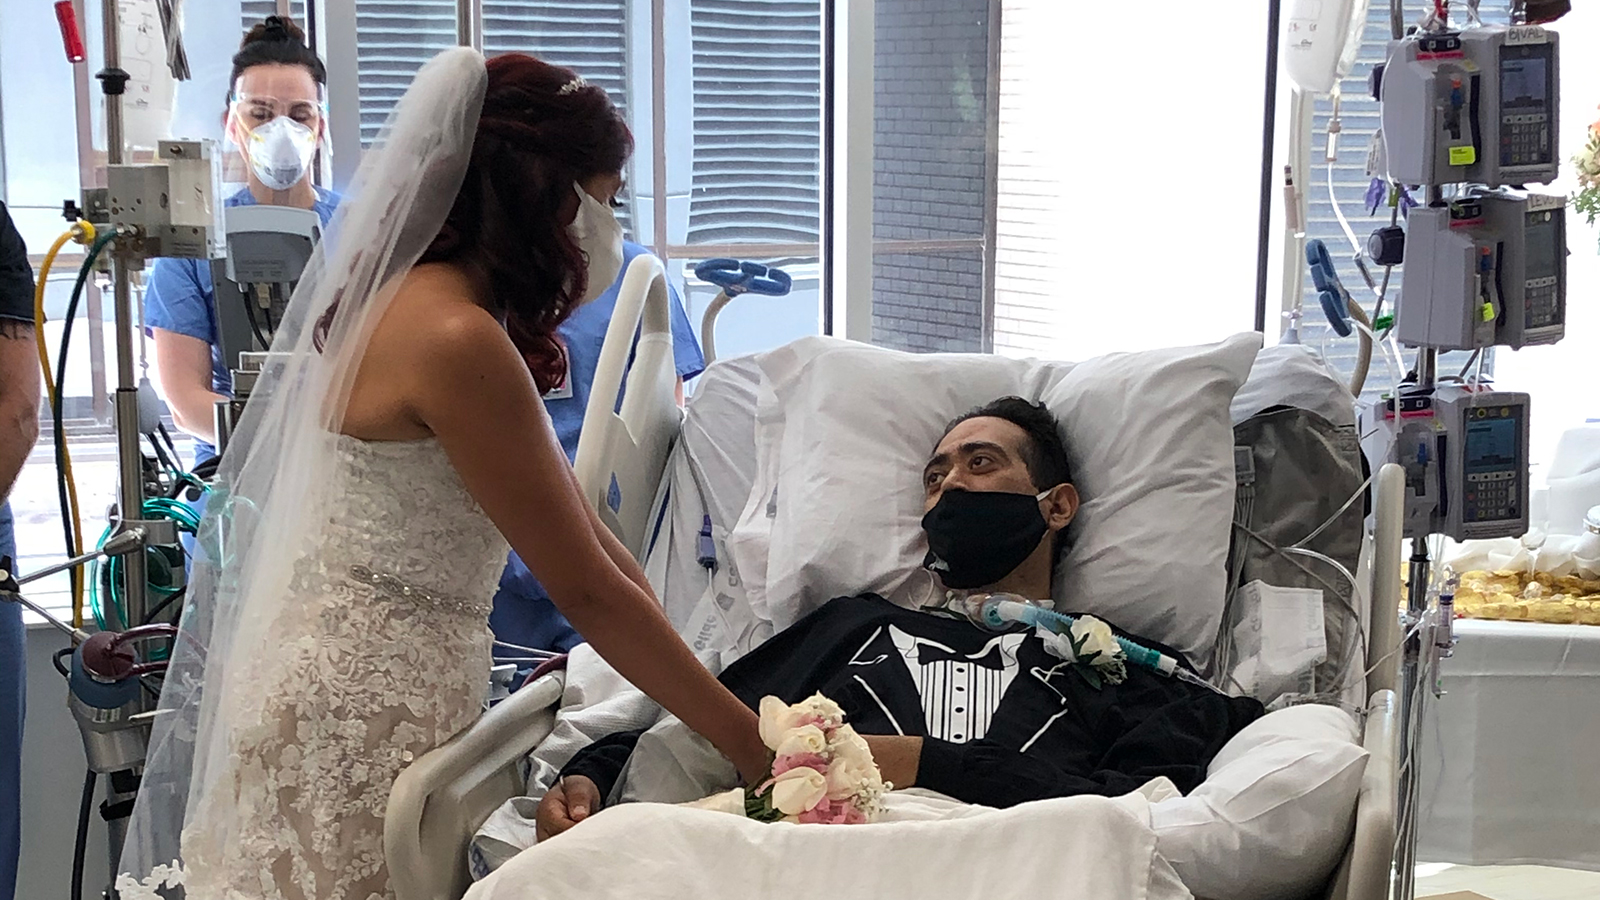 Carlos Muniz and Grace Leimann are seen at San Antonio Methodist Hospital after their wedding in the hospital. (Methodist Healthcare via CNN)